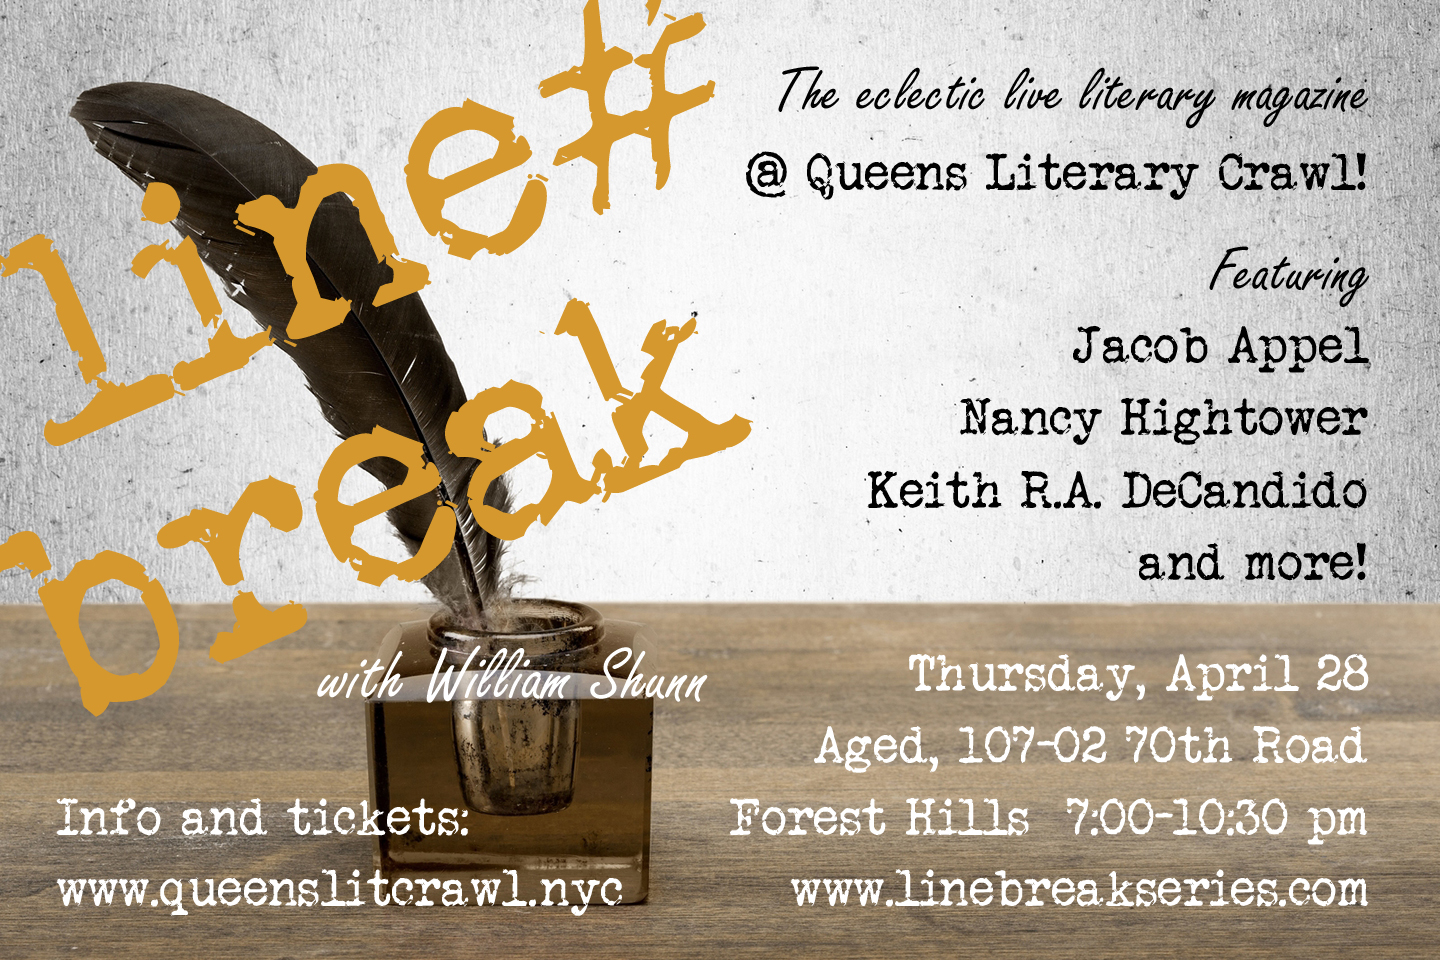 Line Break Reading Series at the Queens Literary Crawl, Thursday, April 28, 7:00-10:30 pm